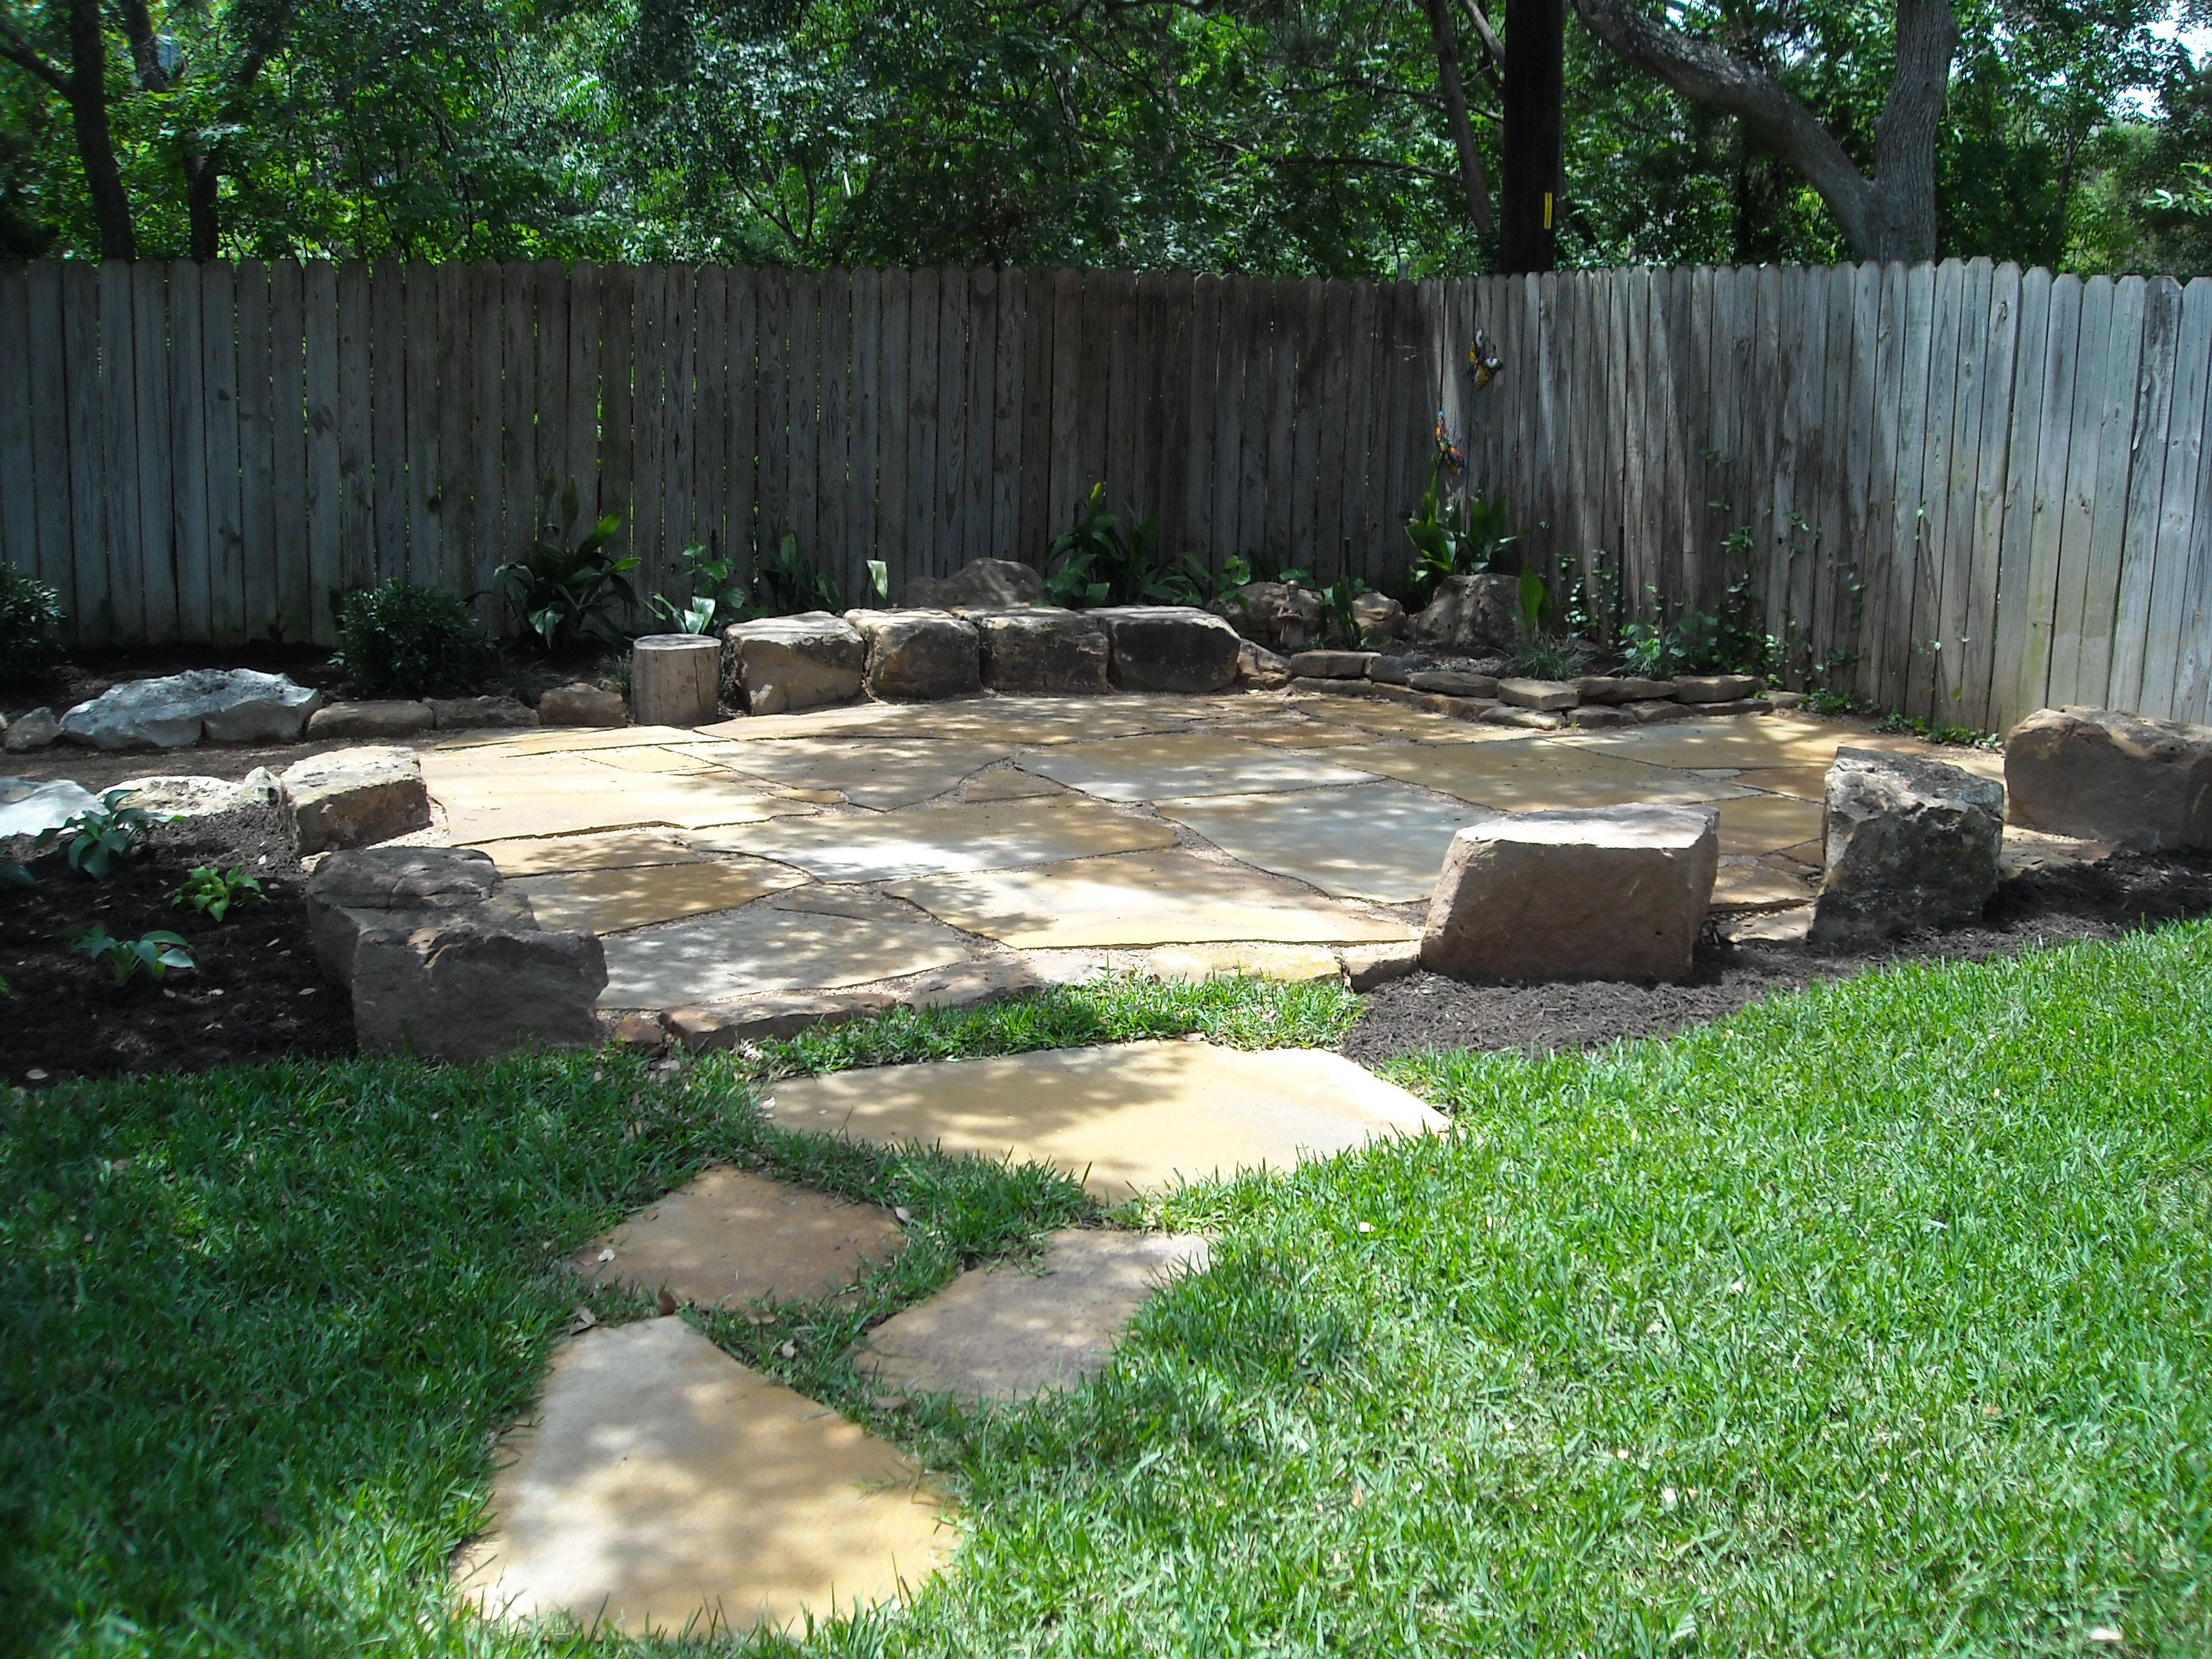 flagstone patio set in decomposed granite with sitting stones